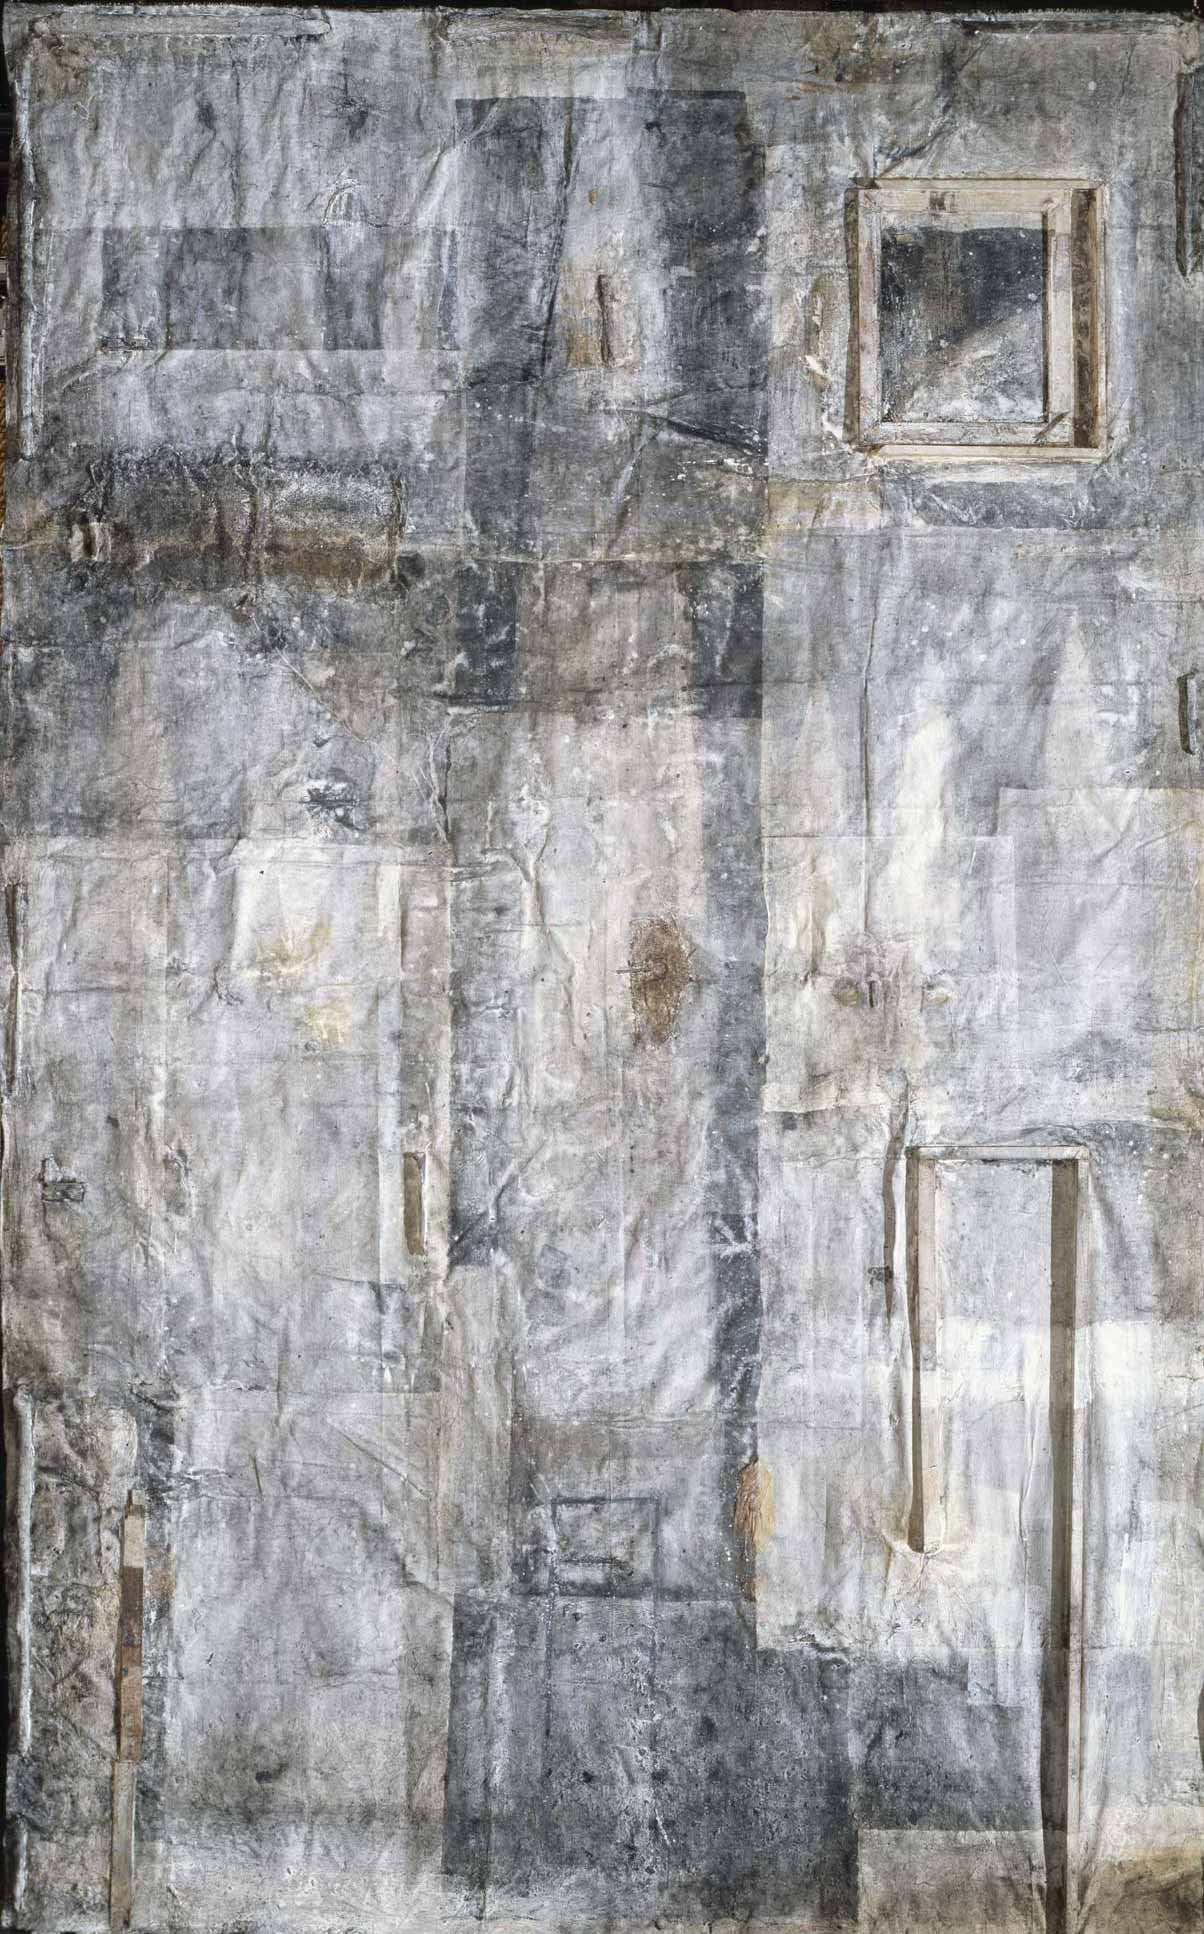 Collage with a Gate or Judging Man    1996   Charcoal, ink, mineral pigment, wood, string, washi on canvas   148 x 11 inches